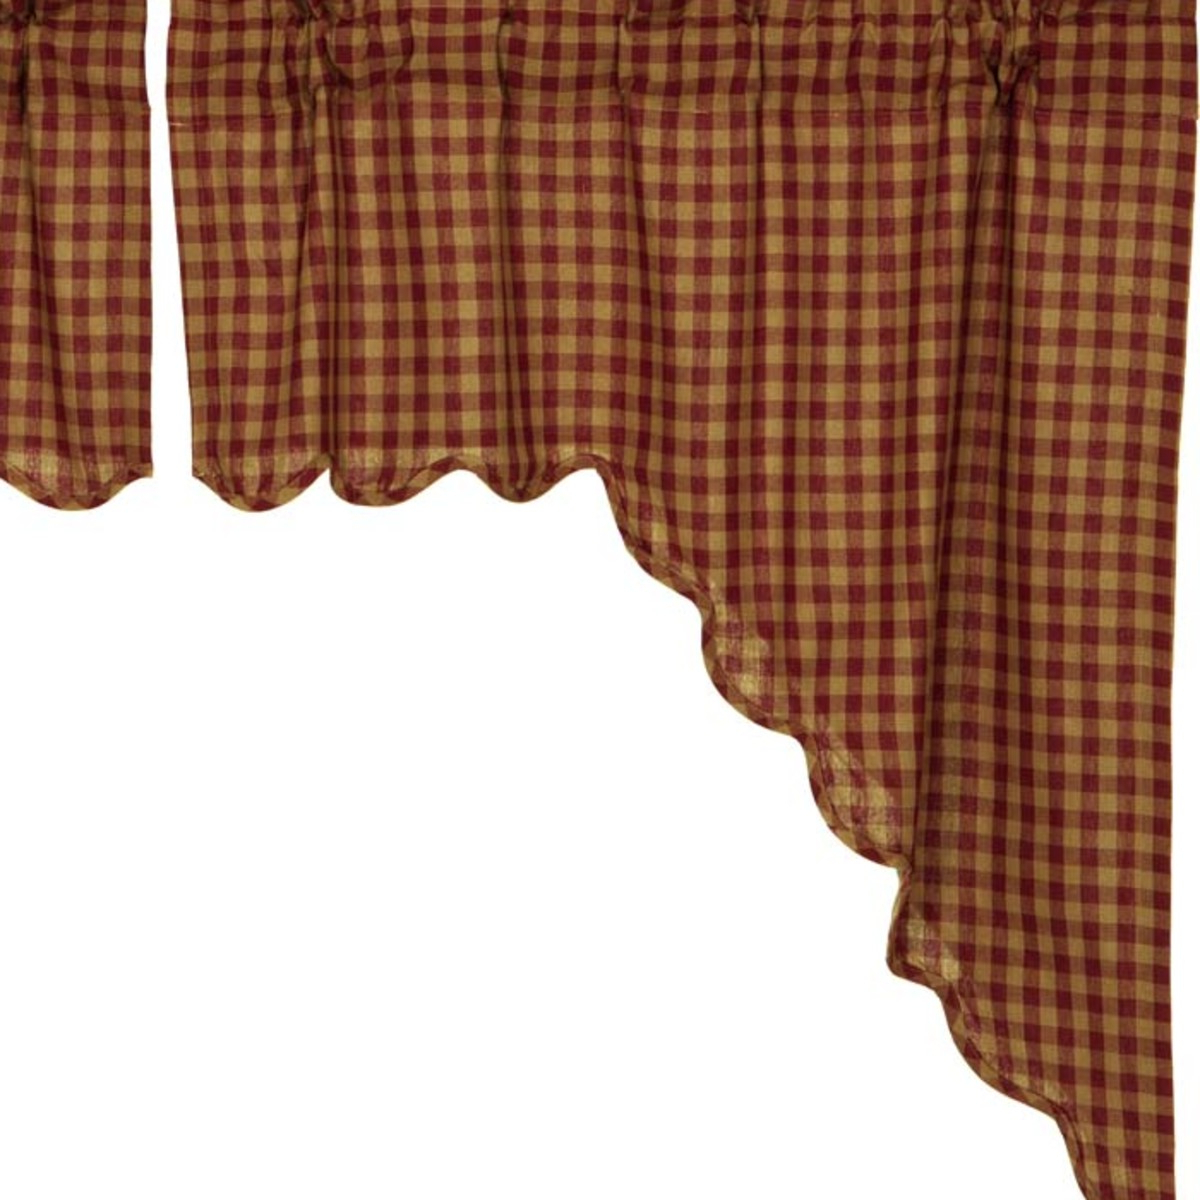 Fashionable Check Scalloped Swag Sets Throughout Burgundy Red Primitive Kitchen Curtains Burgundy Check Rod Pocket Cotton Check Swag Pair (View 14 of 20)